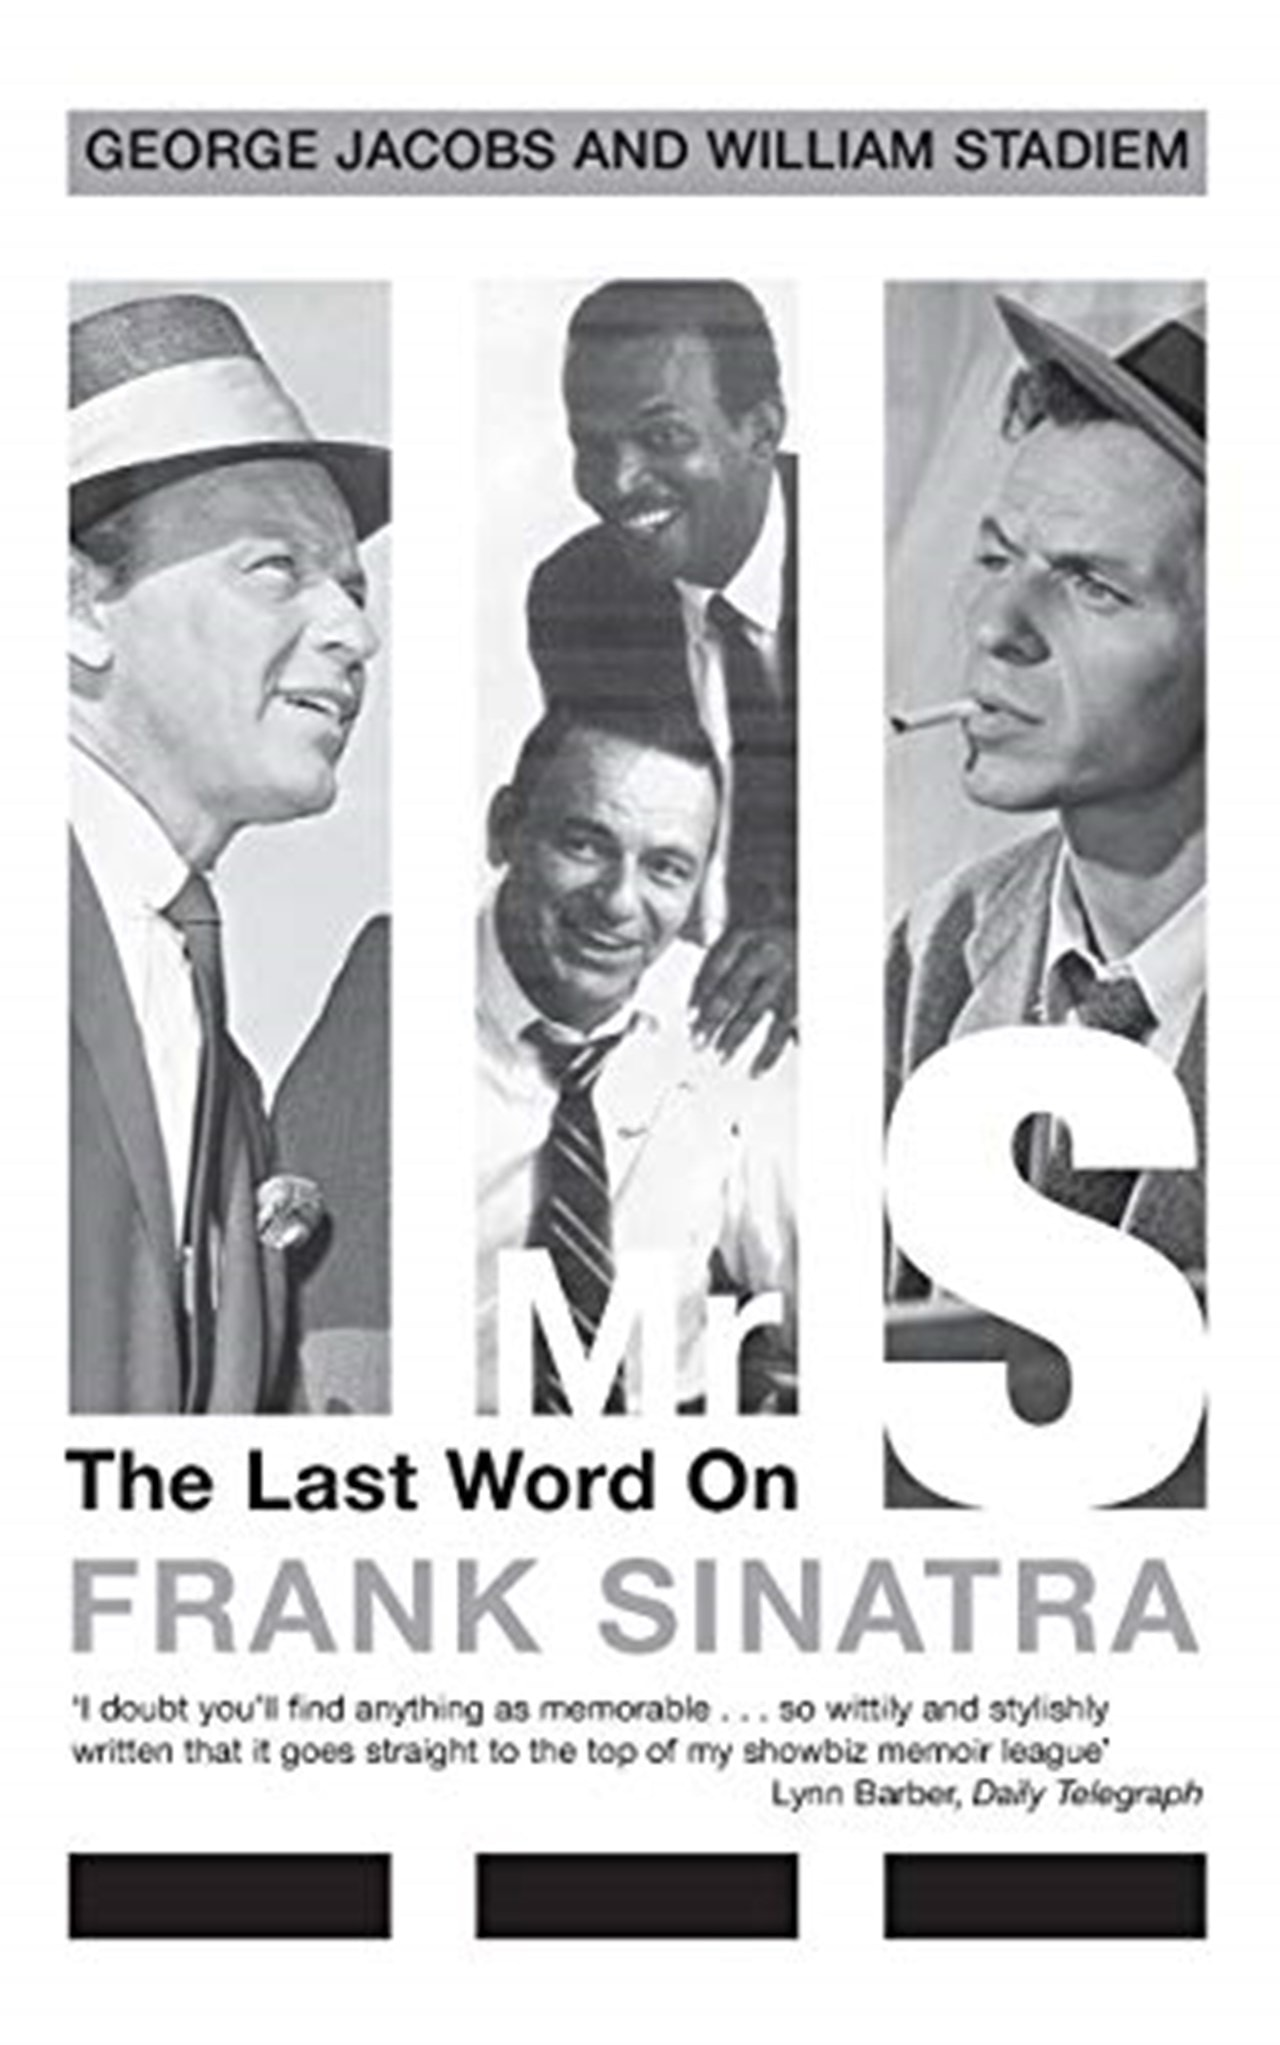 Mr S: The Last Word on Frank Sinatra - 1